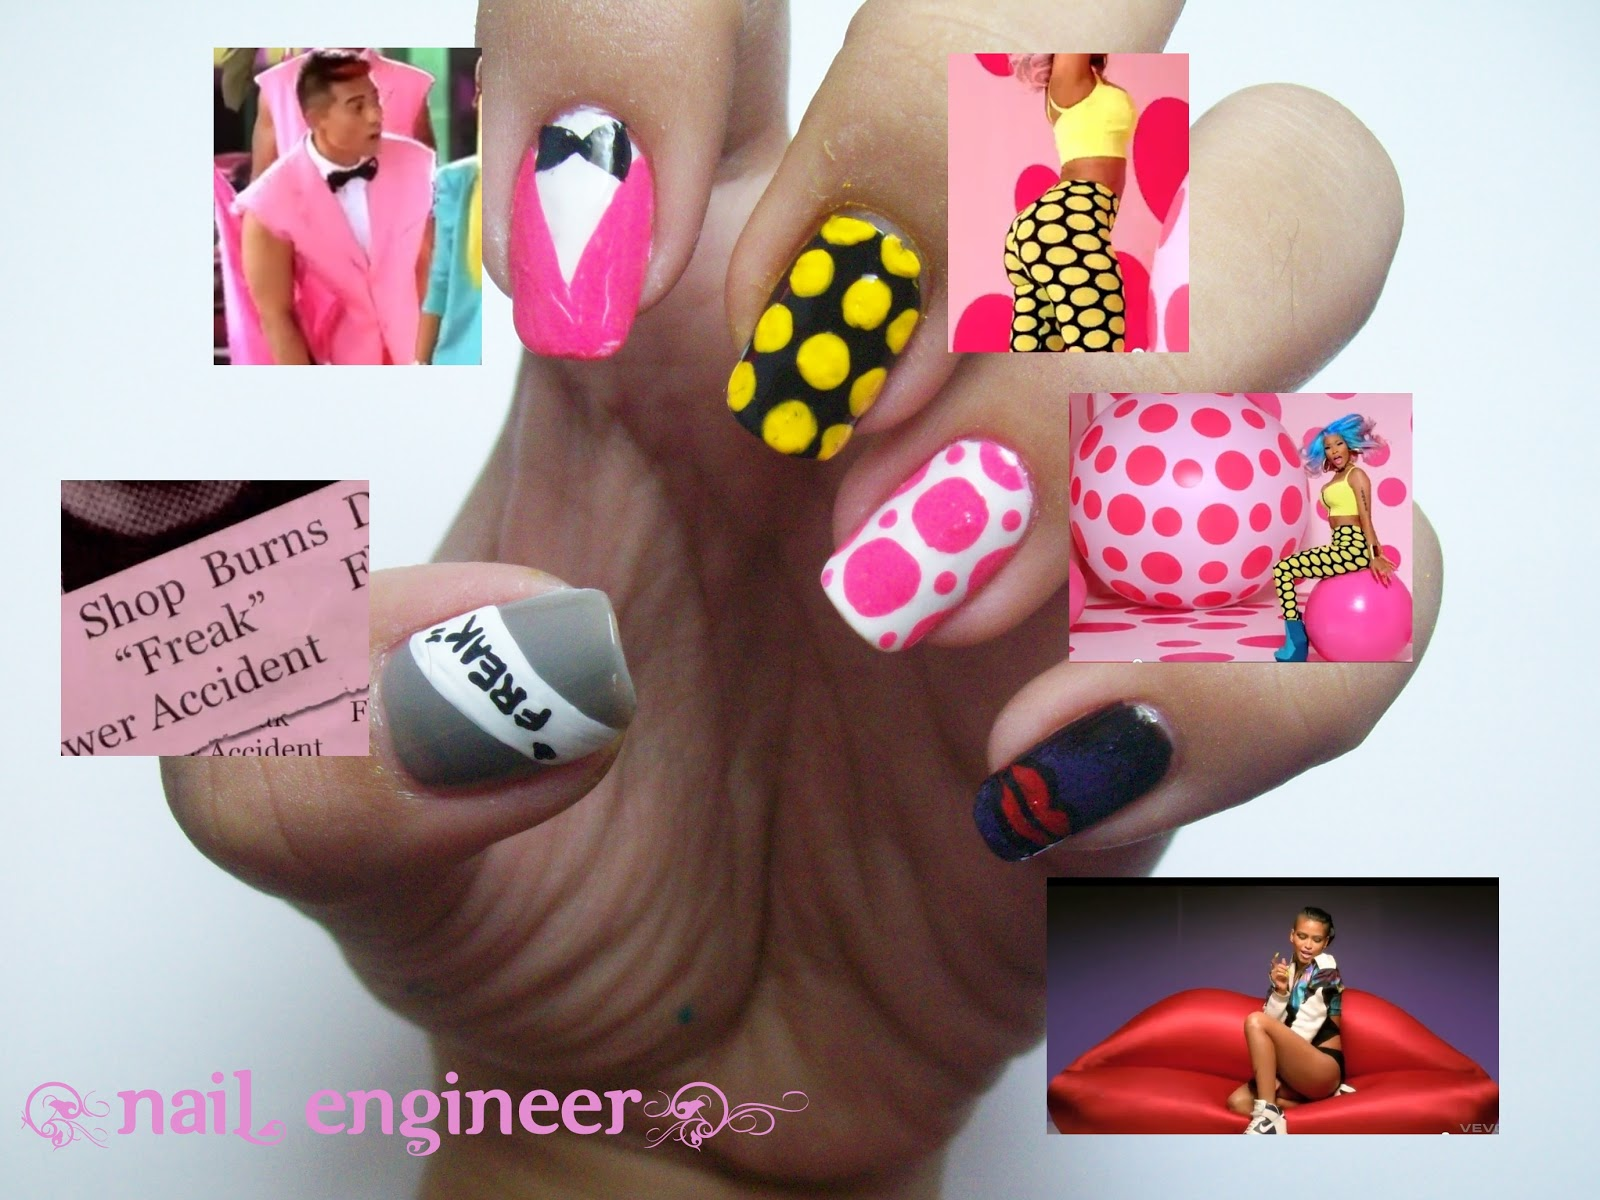 Nail Engineer: The Boys by Nicki Minaj & Cassie - Nail Art